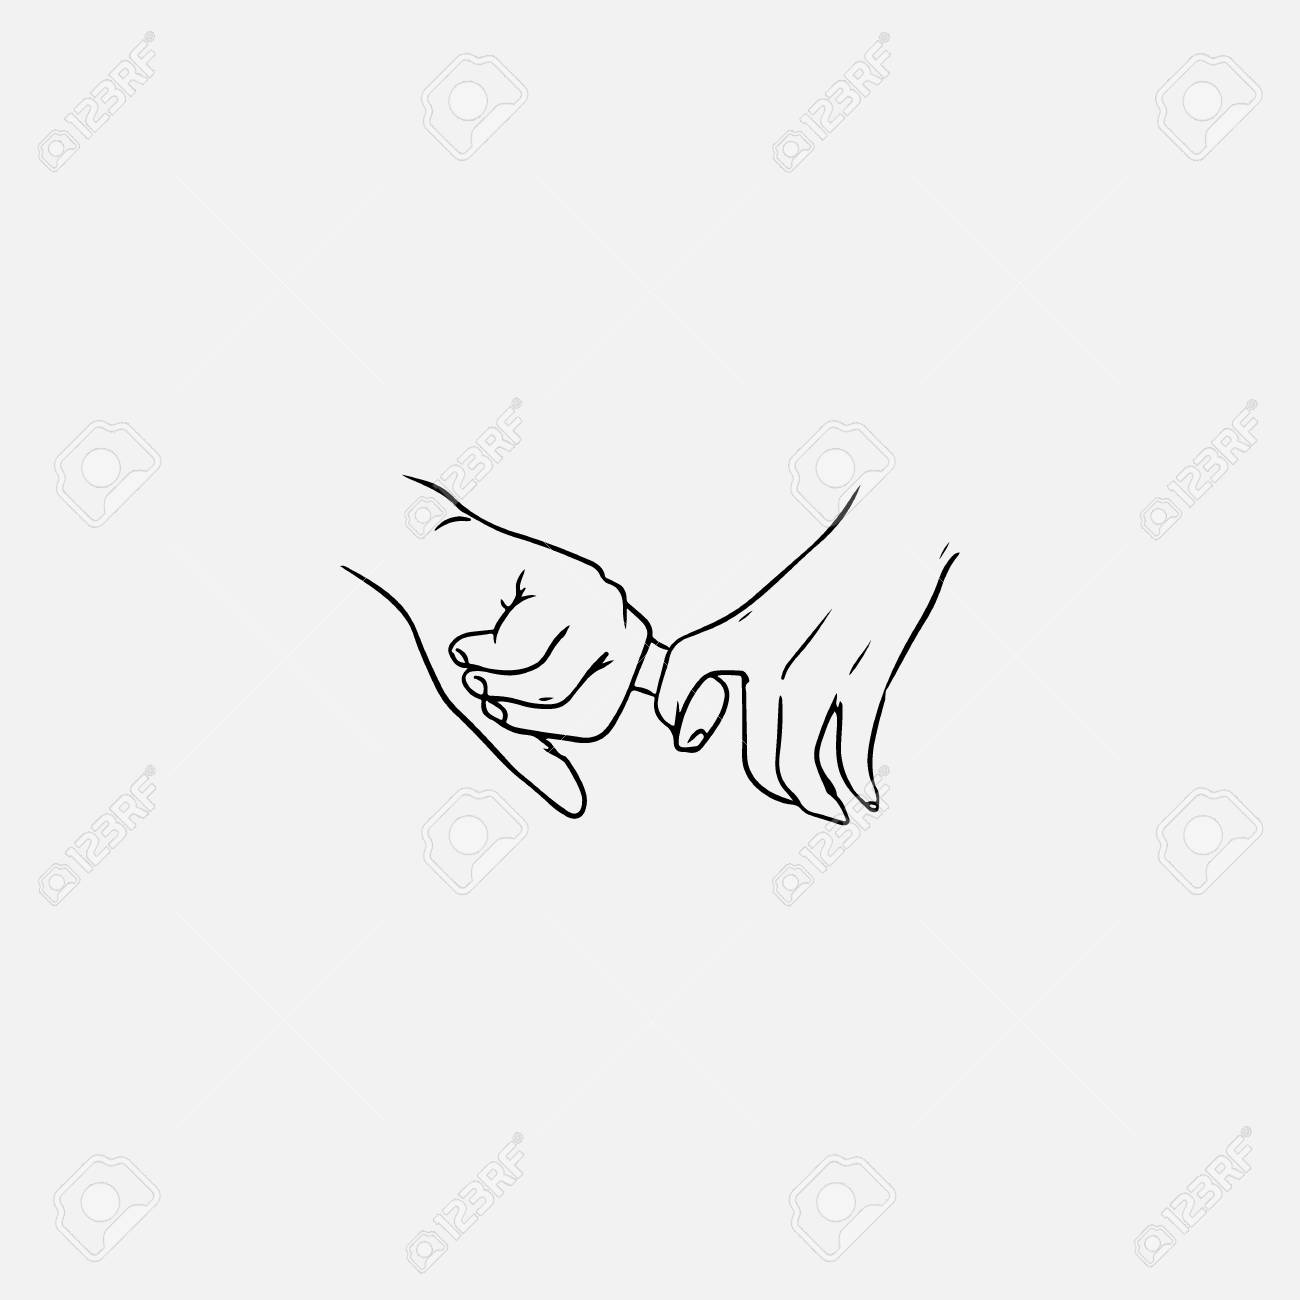 Holding hands hand drawn with contour lines in monochrome colors drawing of one finger